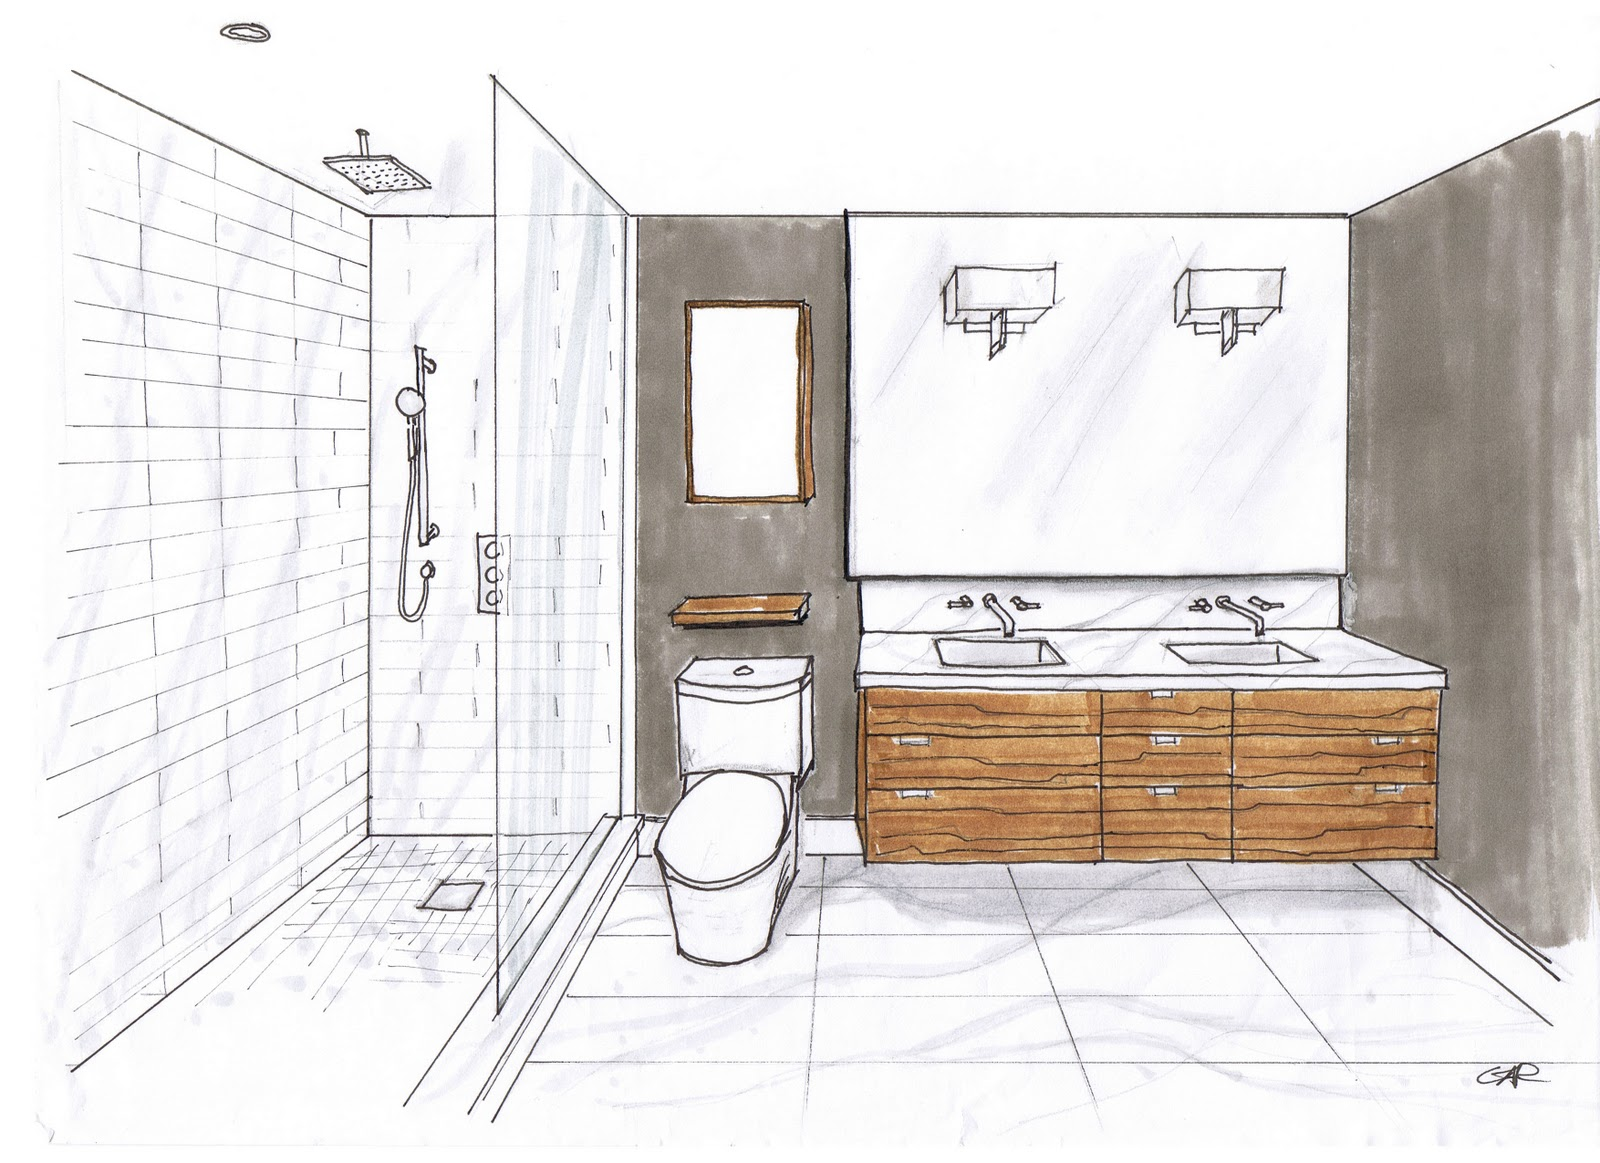 Bathroom perspective drawing - 70 S Bungalow Bathroom Designs Creed 70 S Bungalow Bathroom Designs